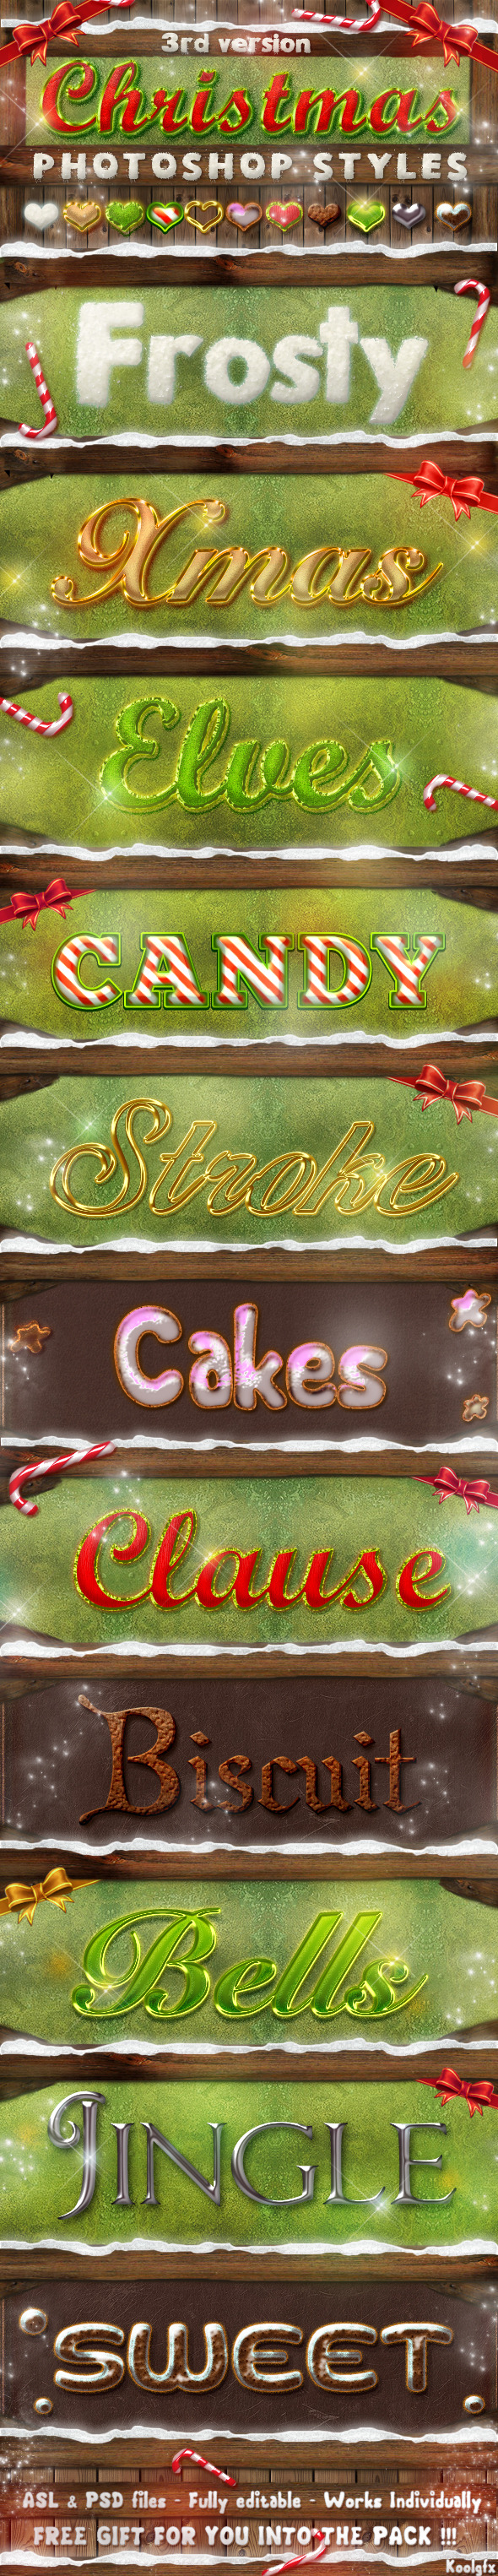 Christmas Photoshop Styles V3 - Text Effects Styles